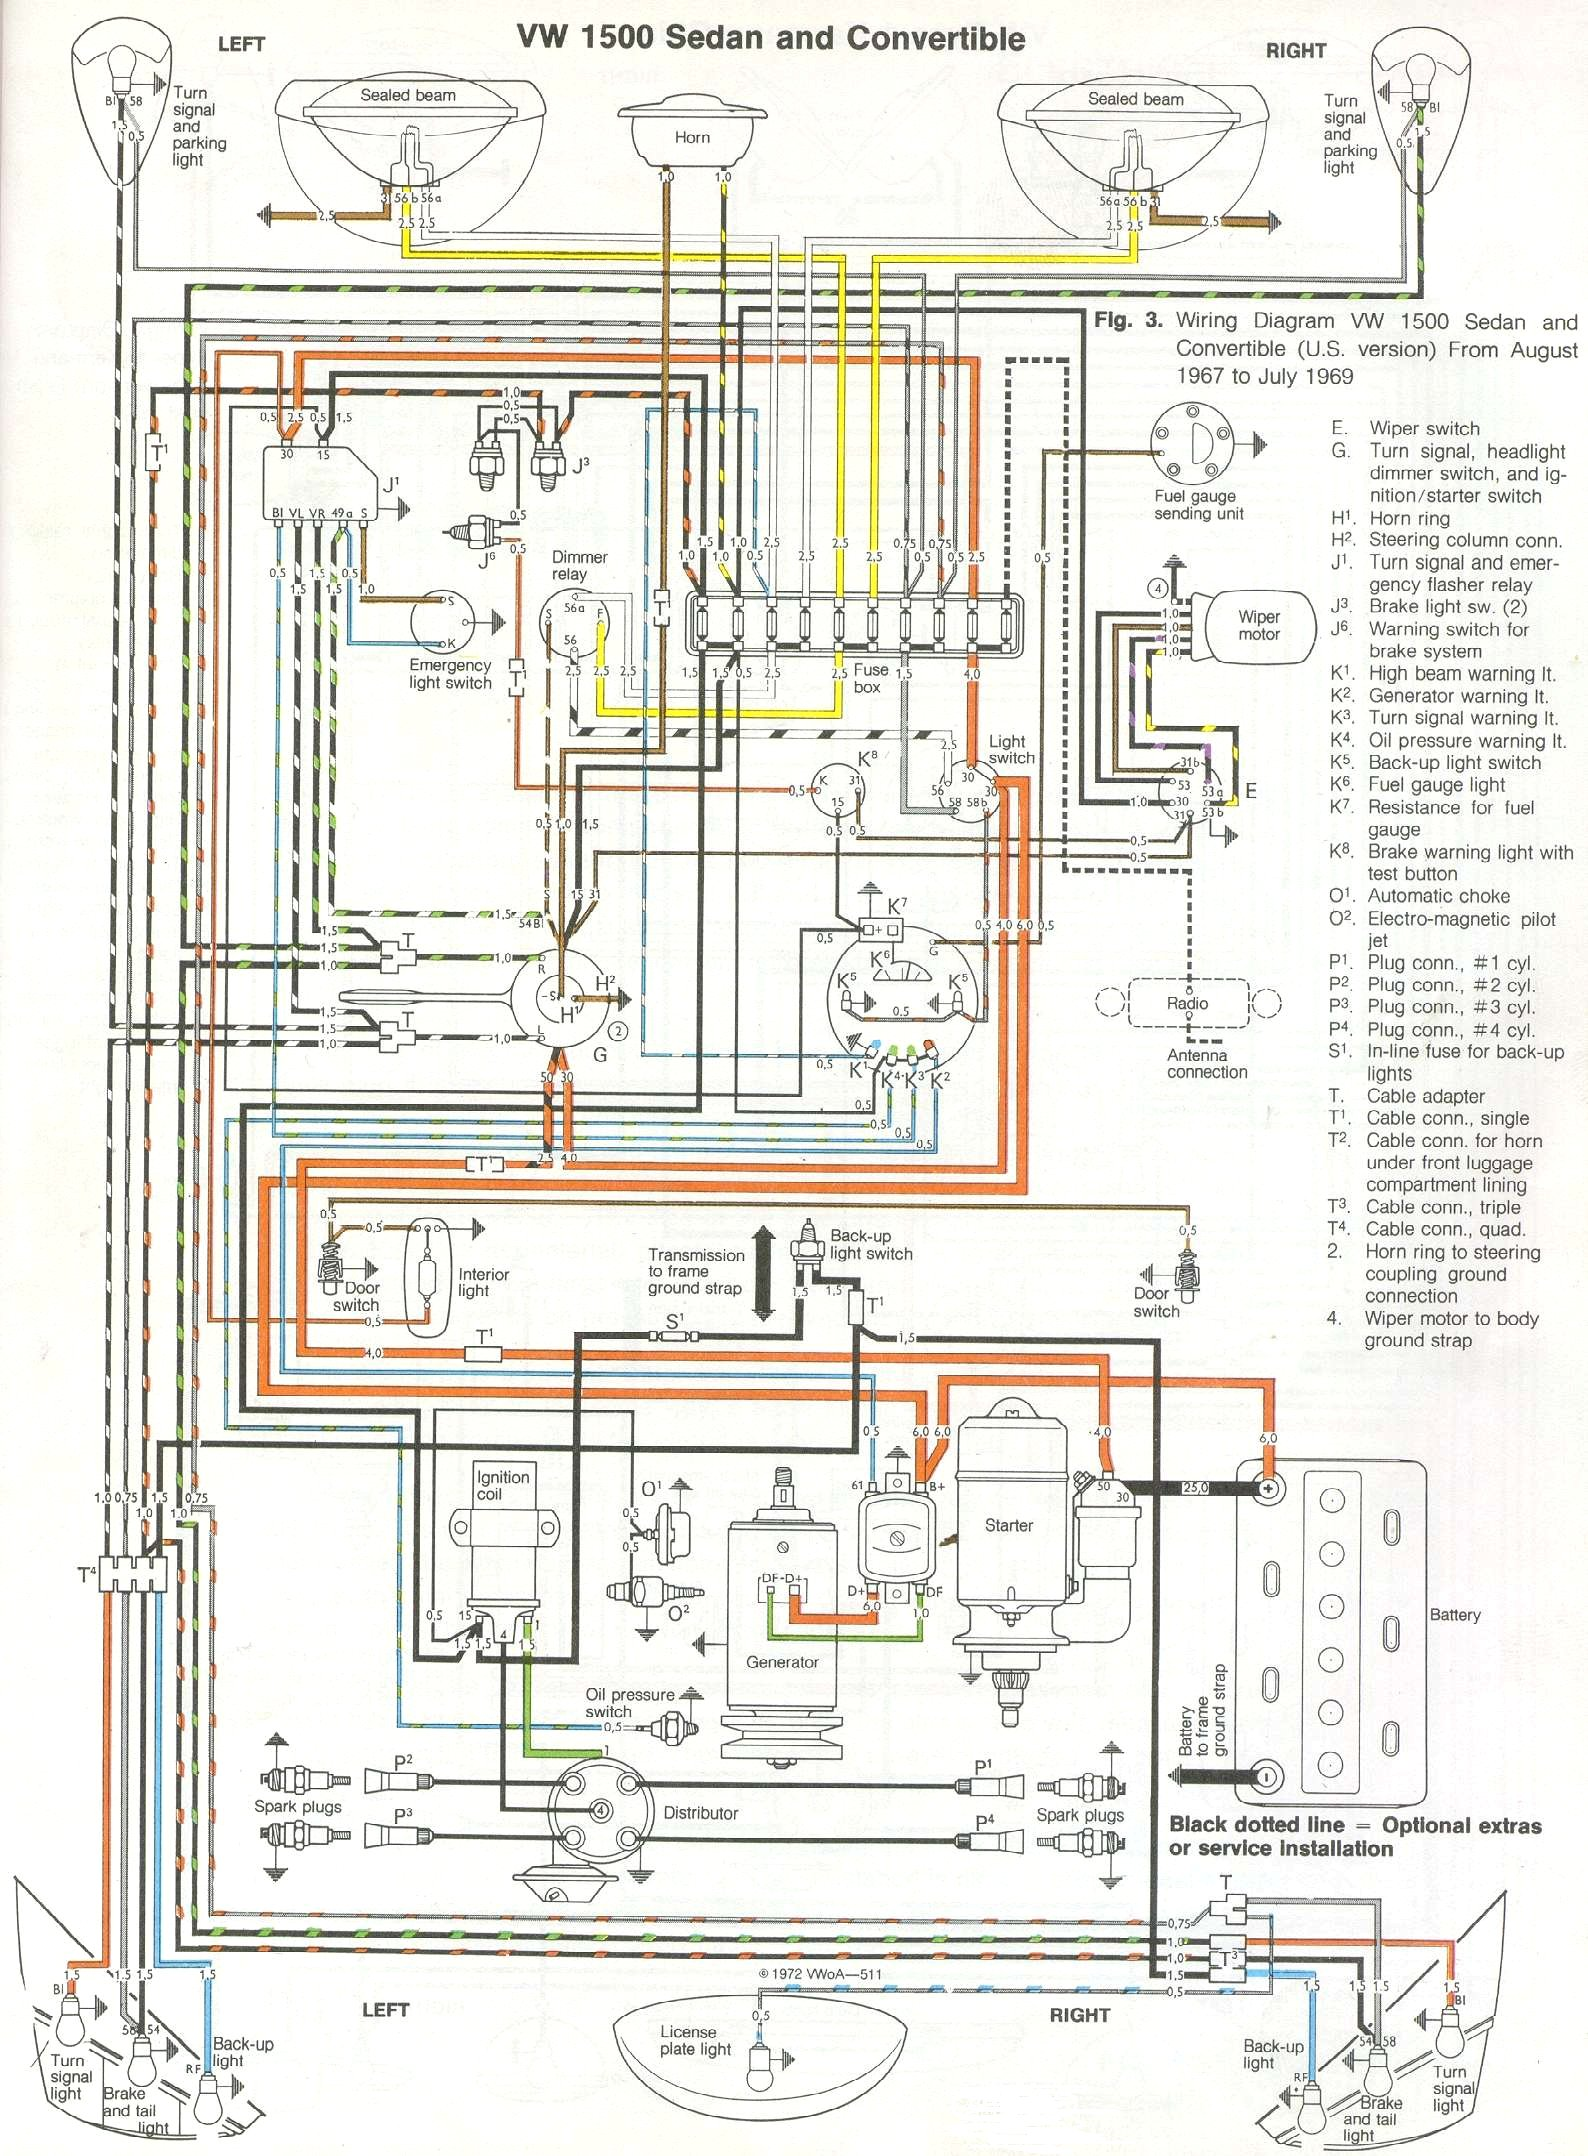 bug_6869 1969 71 beetle wiring diagram thegoldenbug com 1970 vw bug wiring diagram at alyssarenee.co